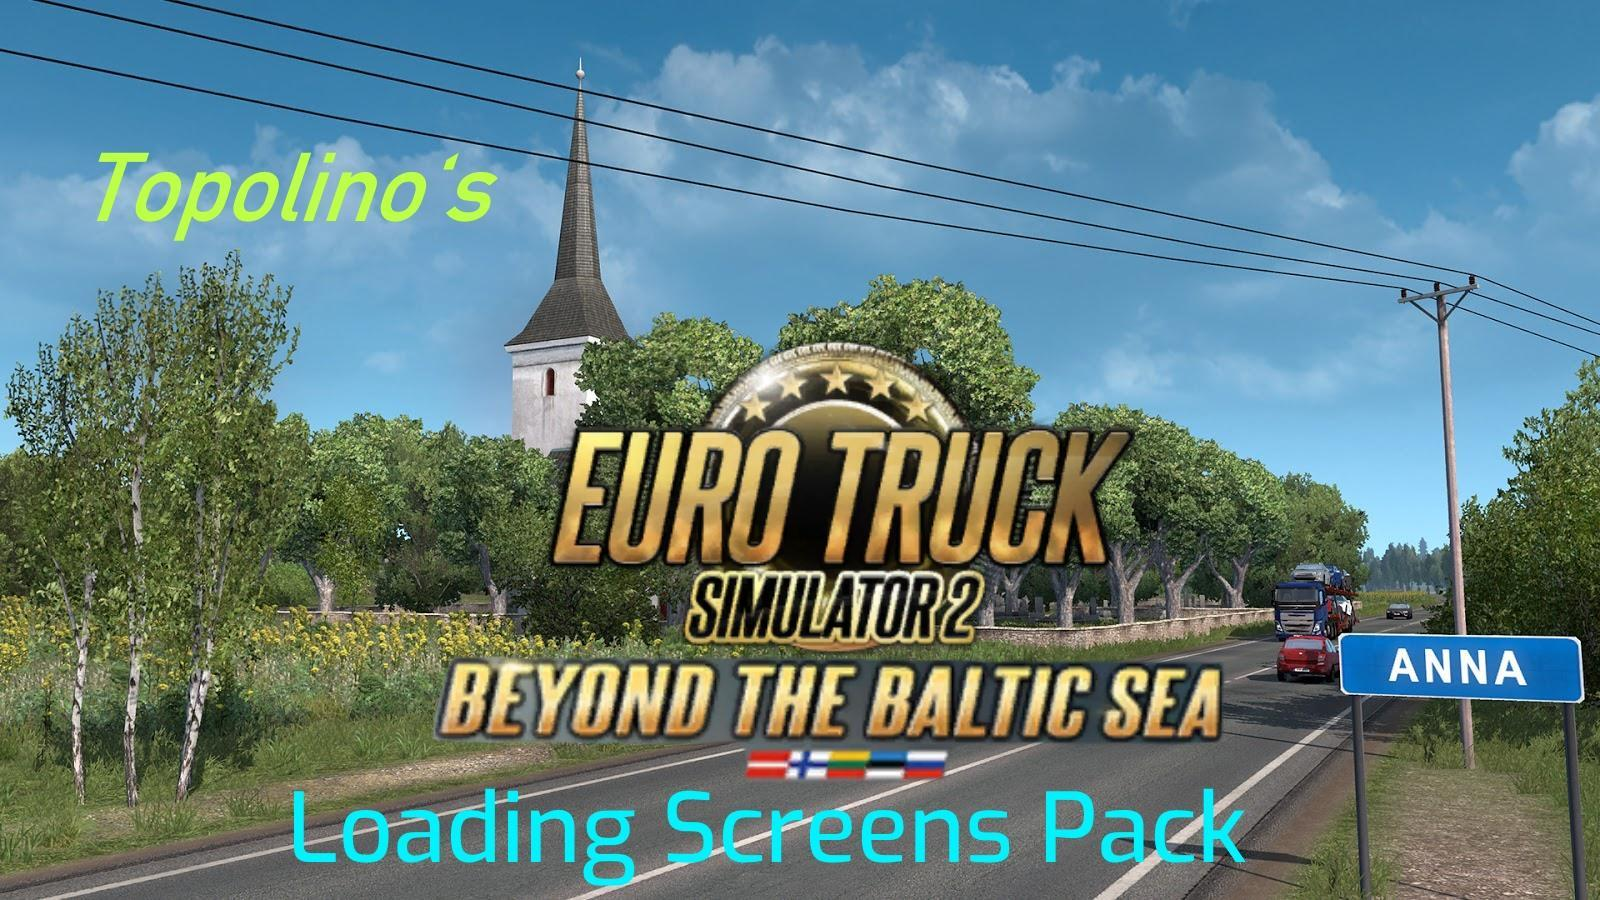 beyond the baltic sea loading screens pack. Black Bedroom Furniture Sets. Home Design Ideas